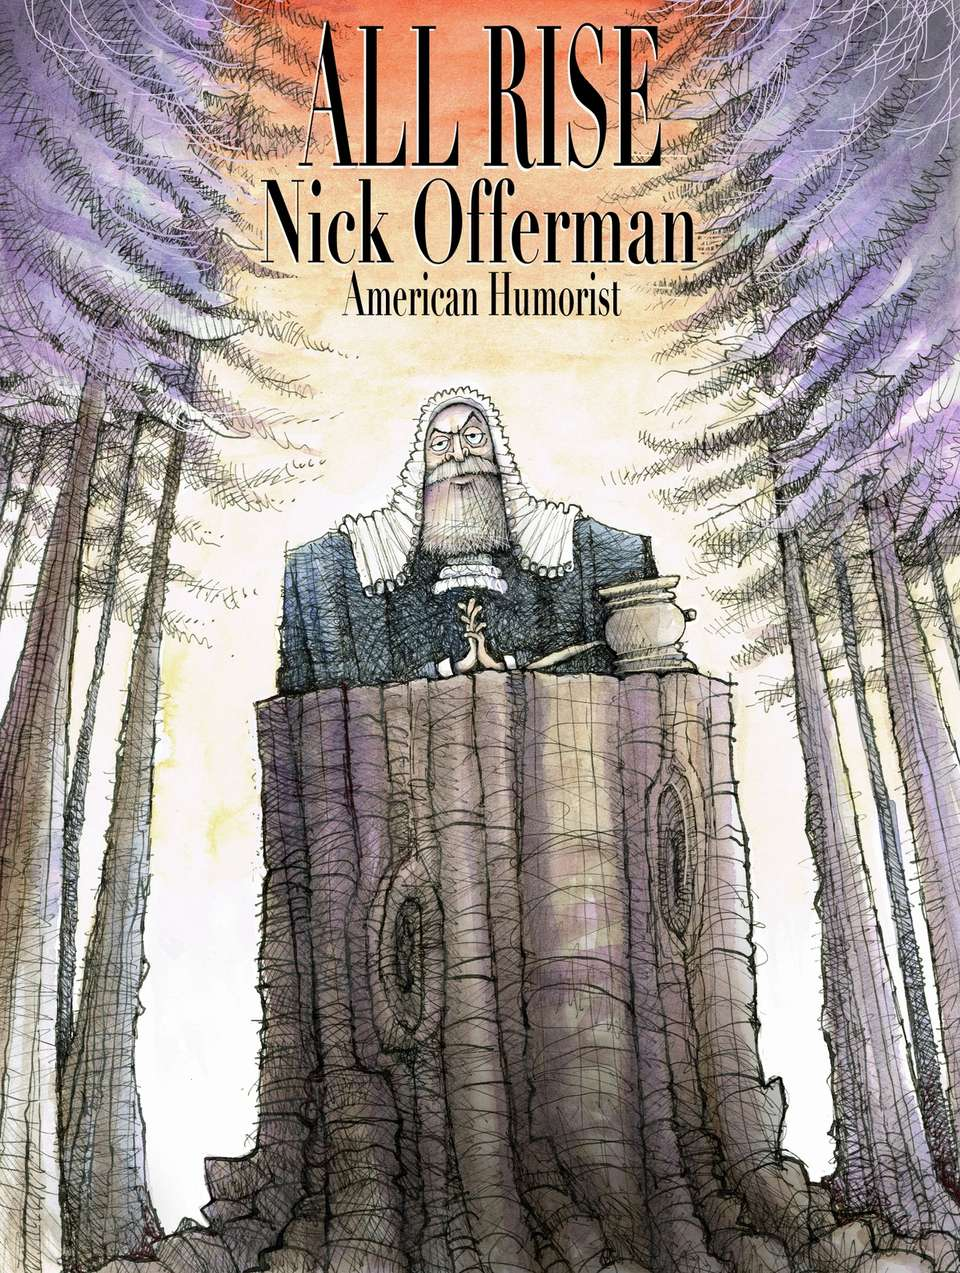 Tour poster illustration depicting Nick Offerman as a judge in a forest